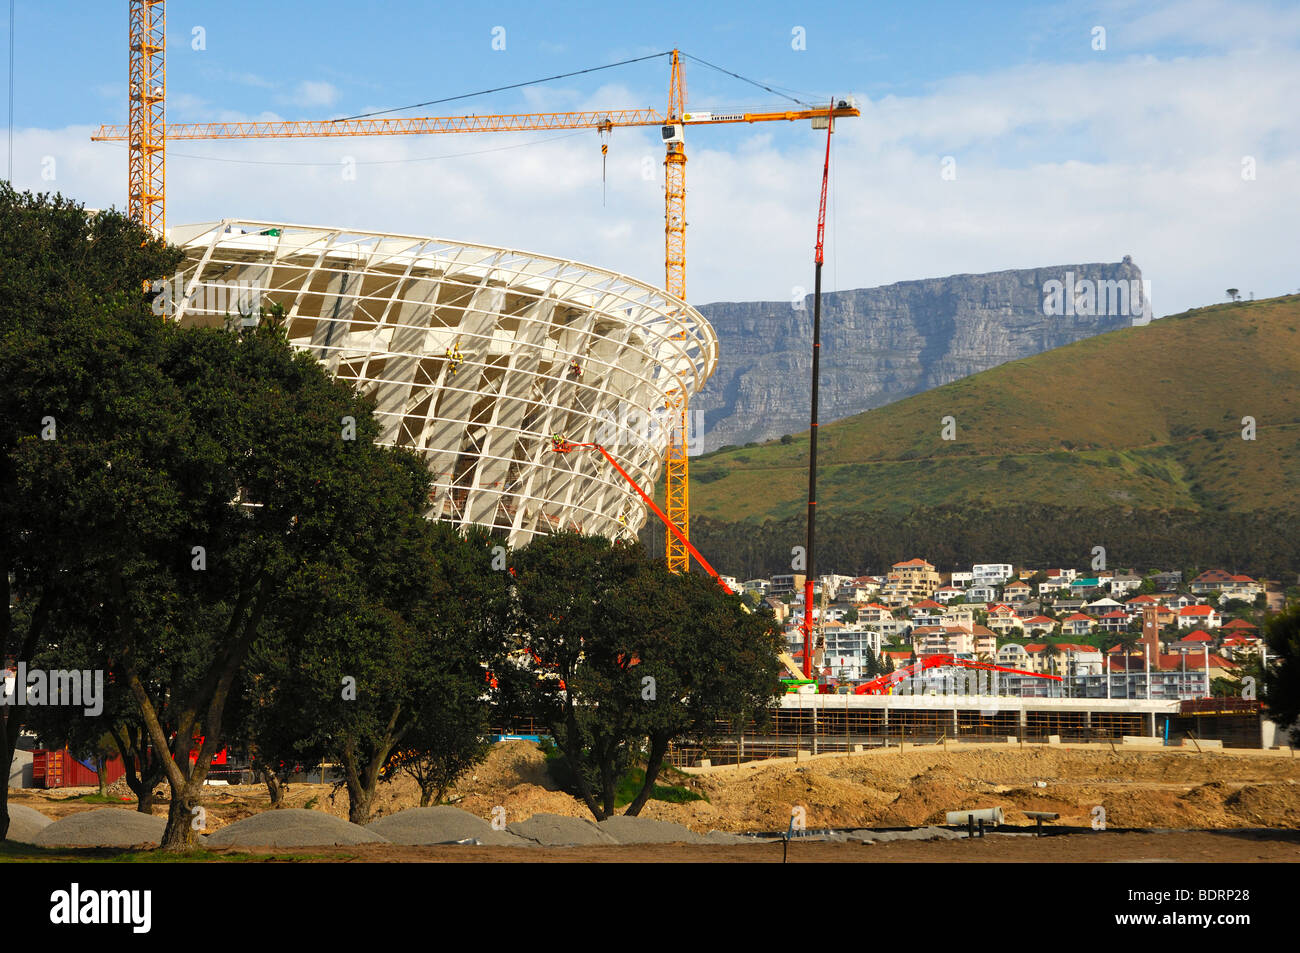 Soccer World Championship 2010, Greenpoint Soccer Stadium under construction, Table Mountain behind, Cape Town, - Stock Image